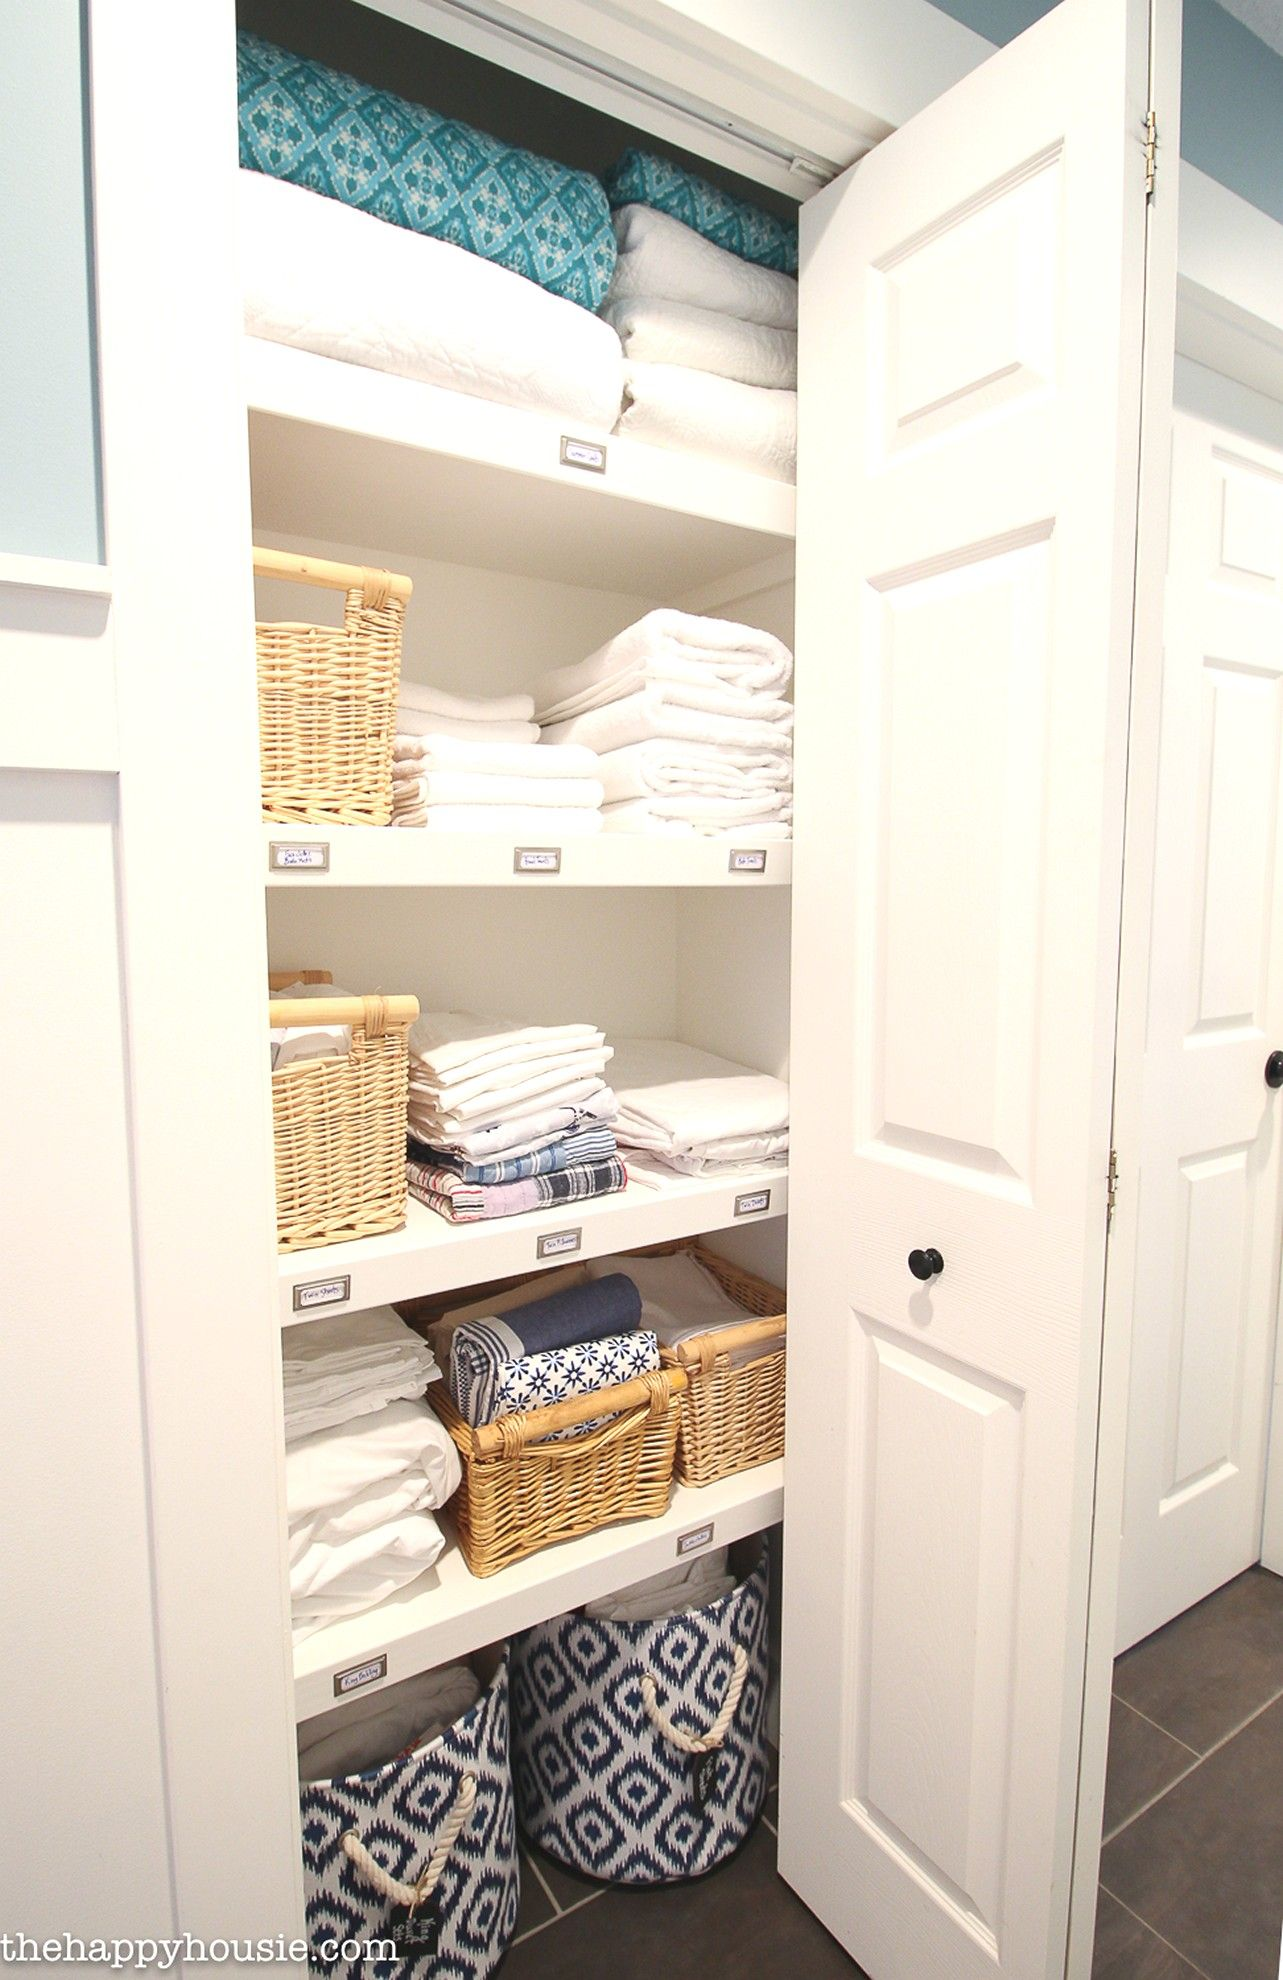 How To Create a Beautiful and Practical Linen Closet in a Quick #homedesigntips #homedecorationideas #homedesignideas #hometips #homecare #homedecorating #home